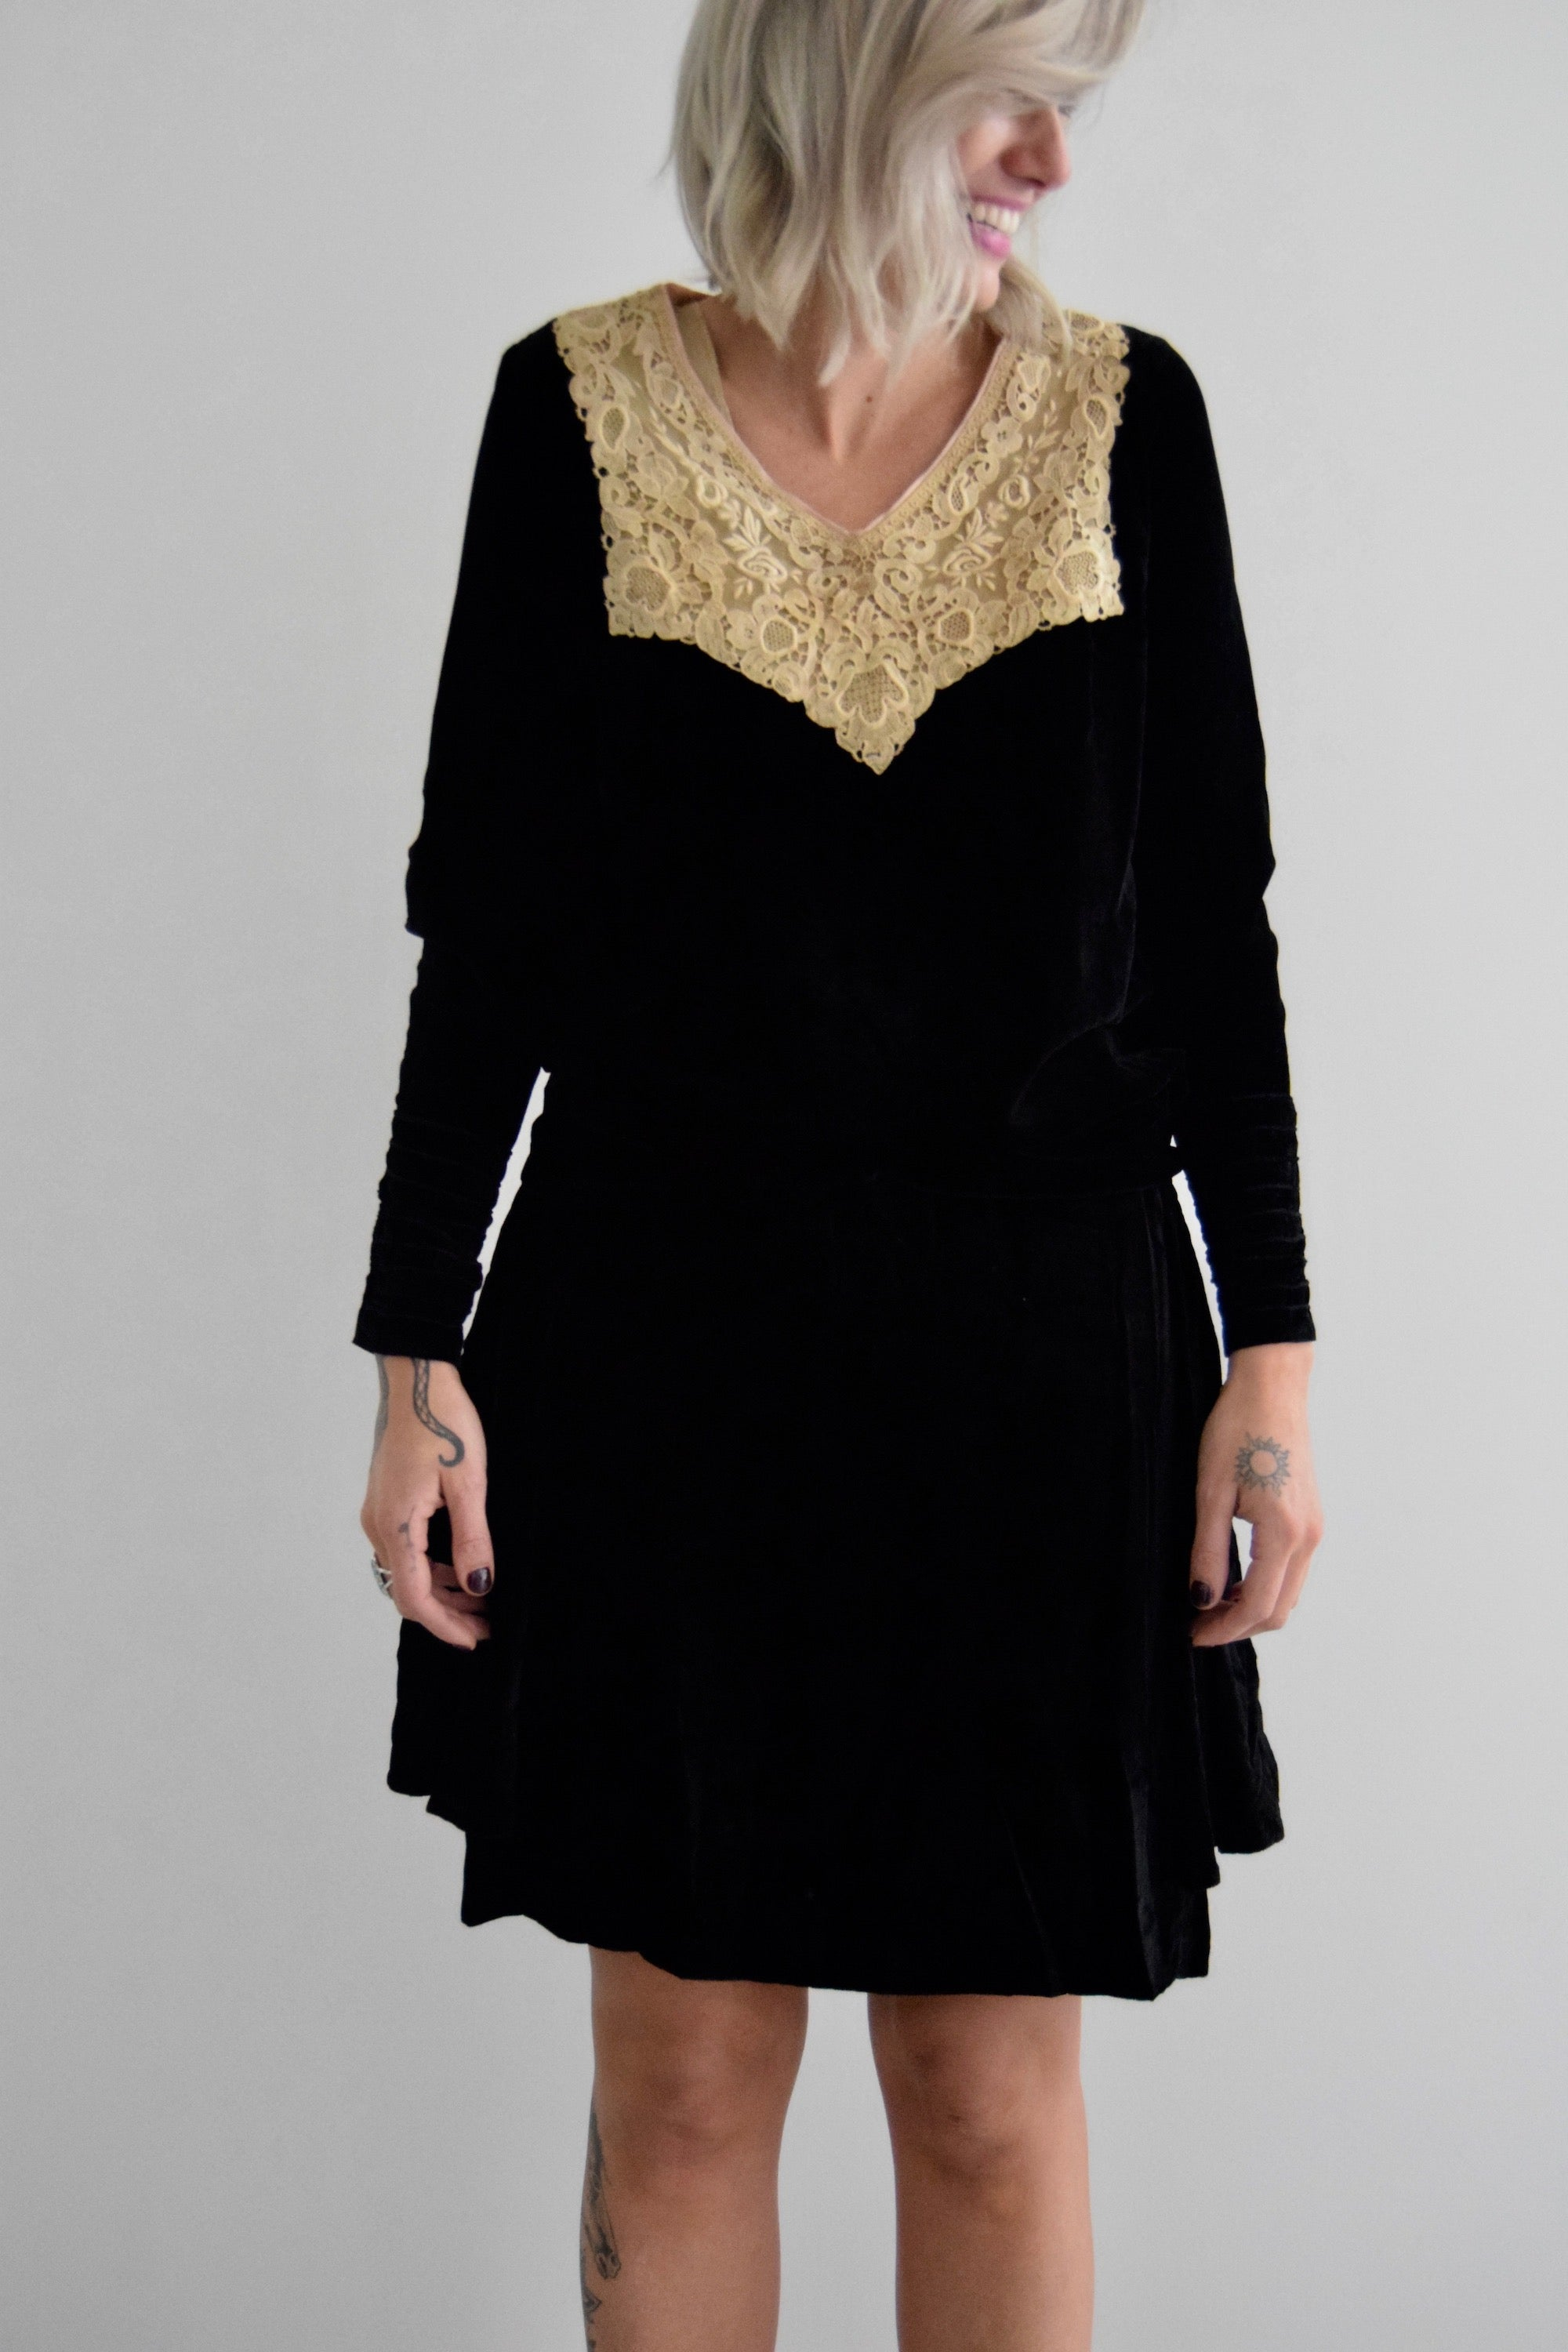 Vintage 1920's Black Velvet Drop Waist Dress